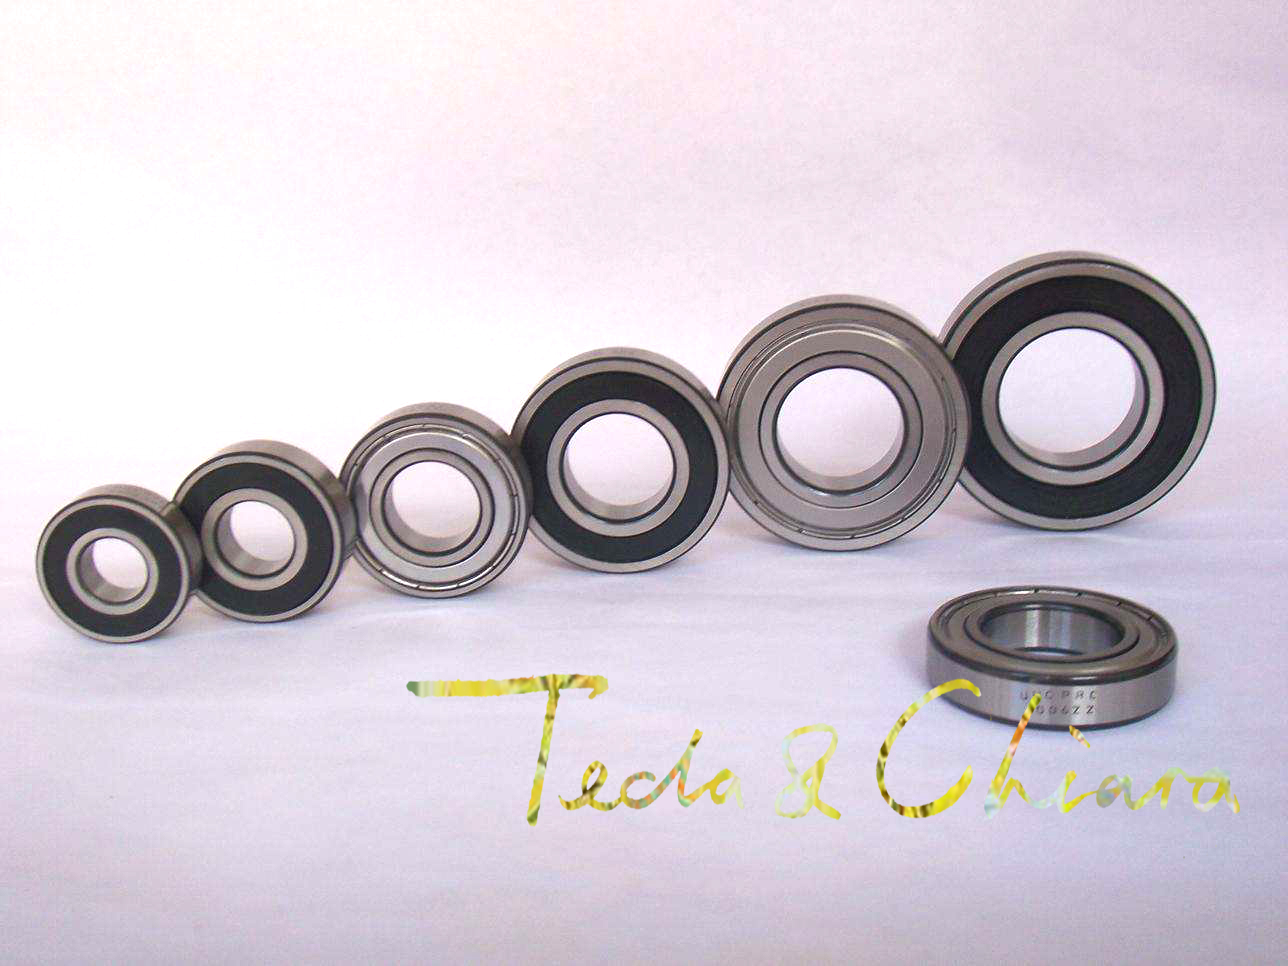 6004 6004ZZ 6004RS 6004-2Z 6004Z 6004-2RS ZZ RS RZ 2RZ Deep Groove Ball Bearings 20 x 42 x 12mm High Quality gcr15 6328 zz or 6328 2rs 140x300x62mm high precision deep groove ball bearings abec 1 p0